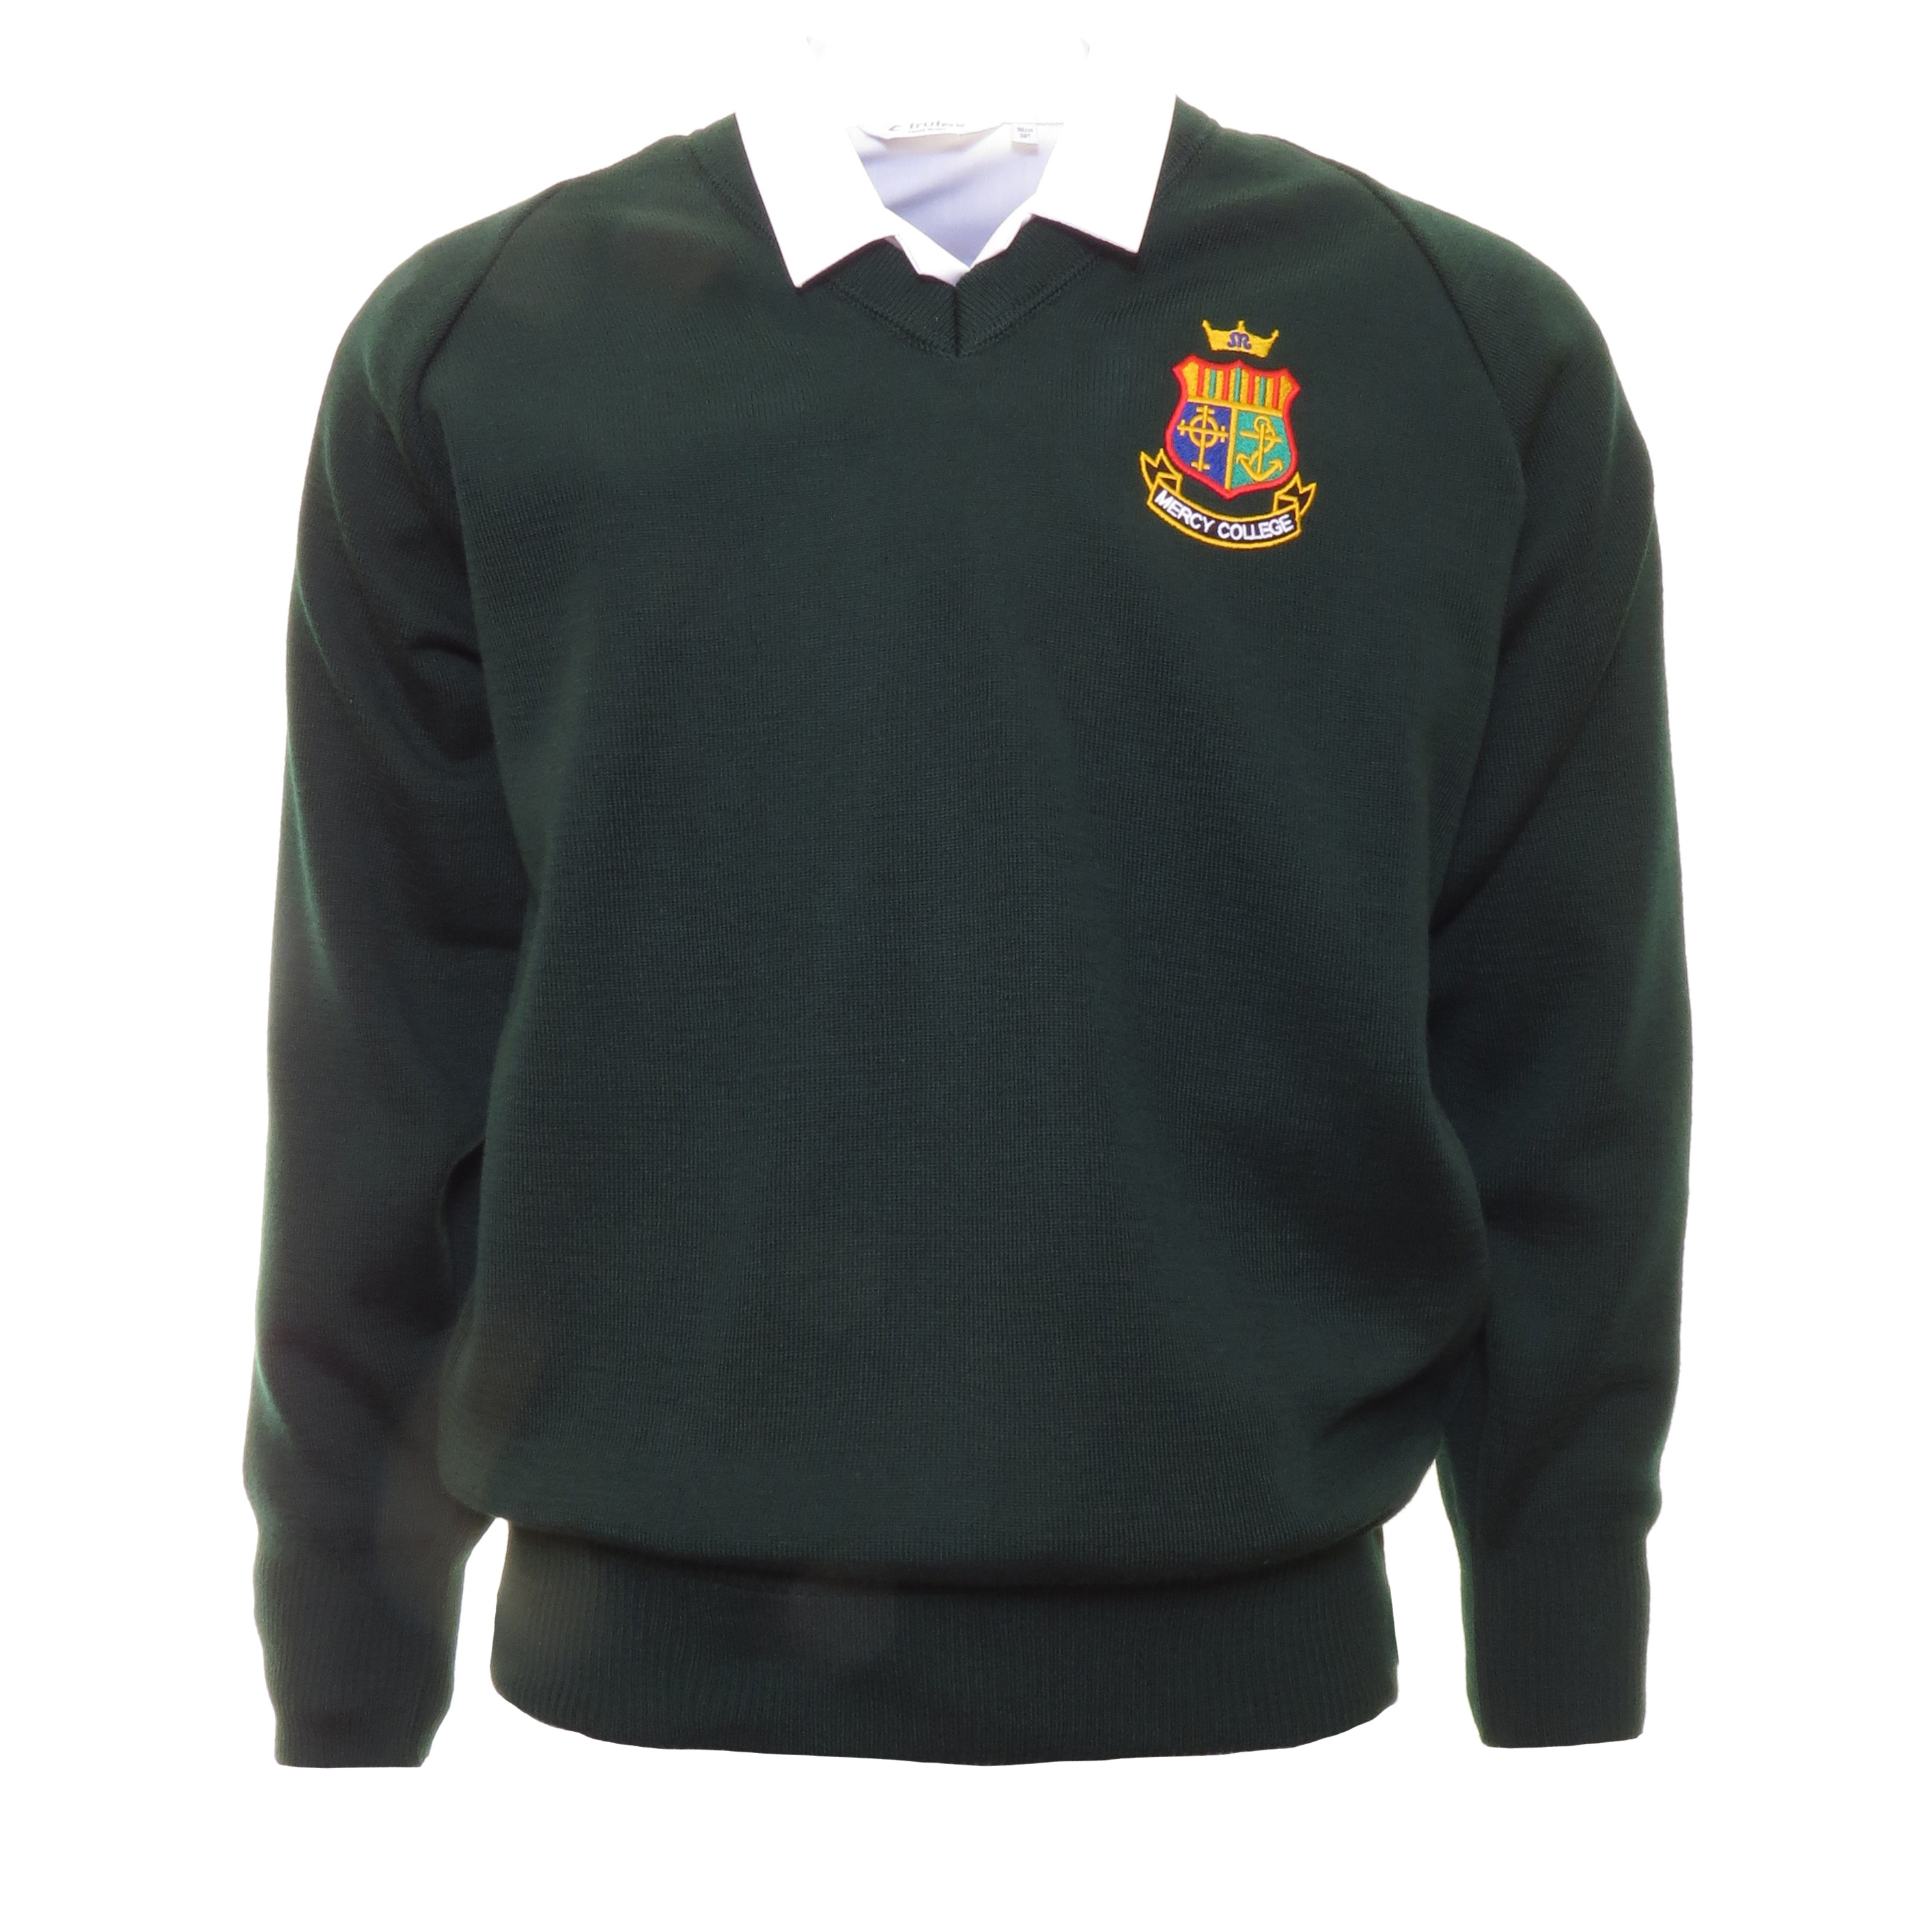 Mercy College Coolock Jumper